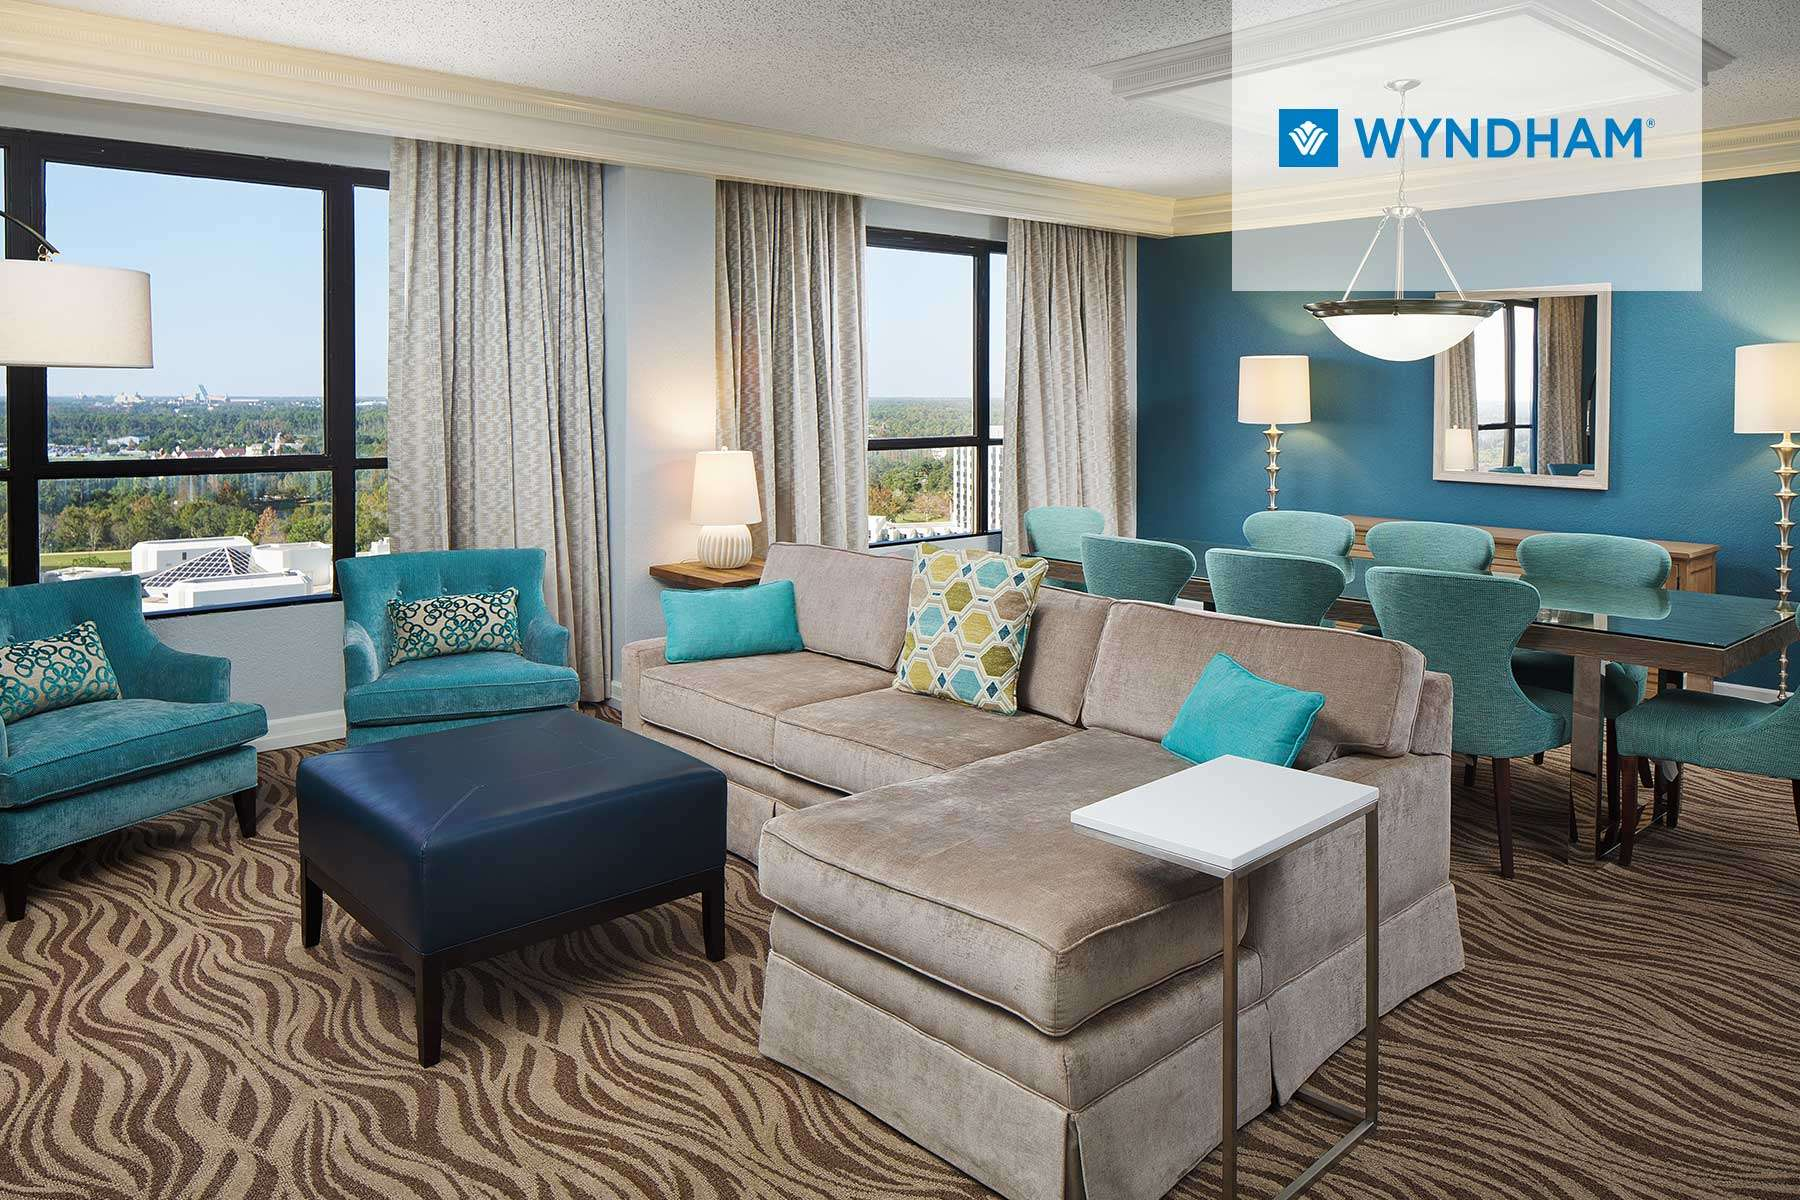 Wyndham Hotels & Resorts completes spin-off and debuts as IPC